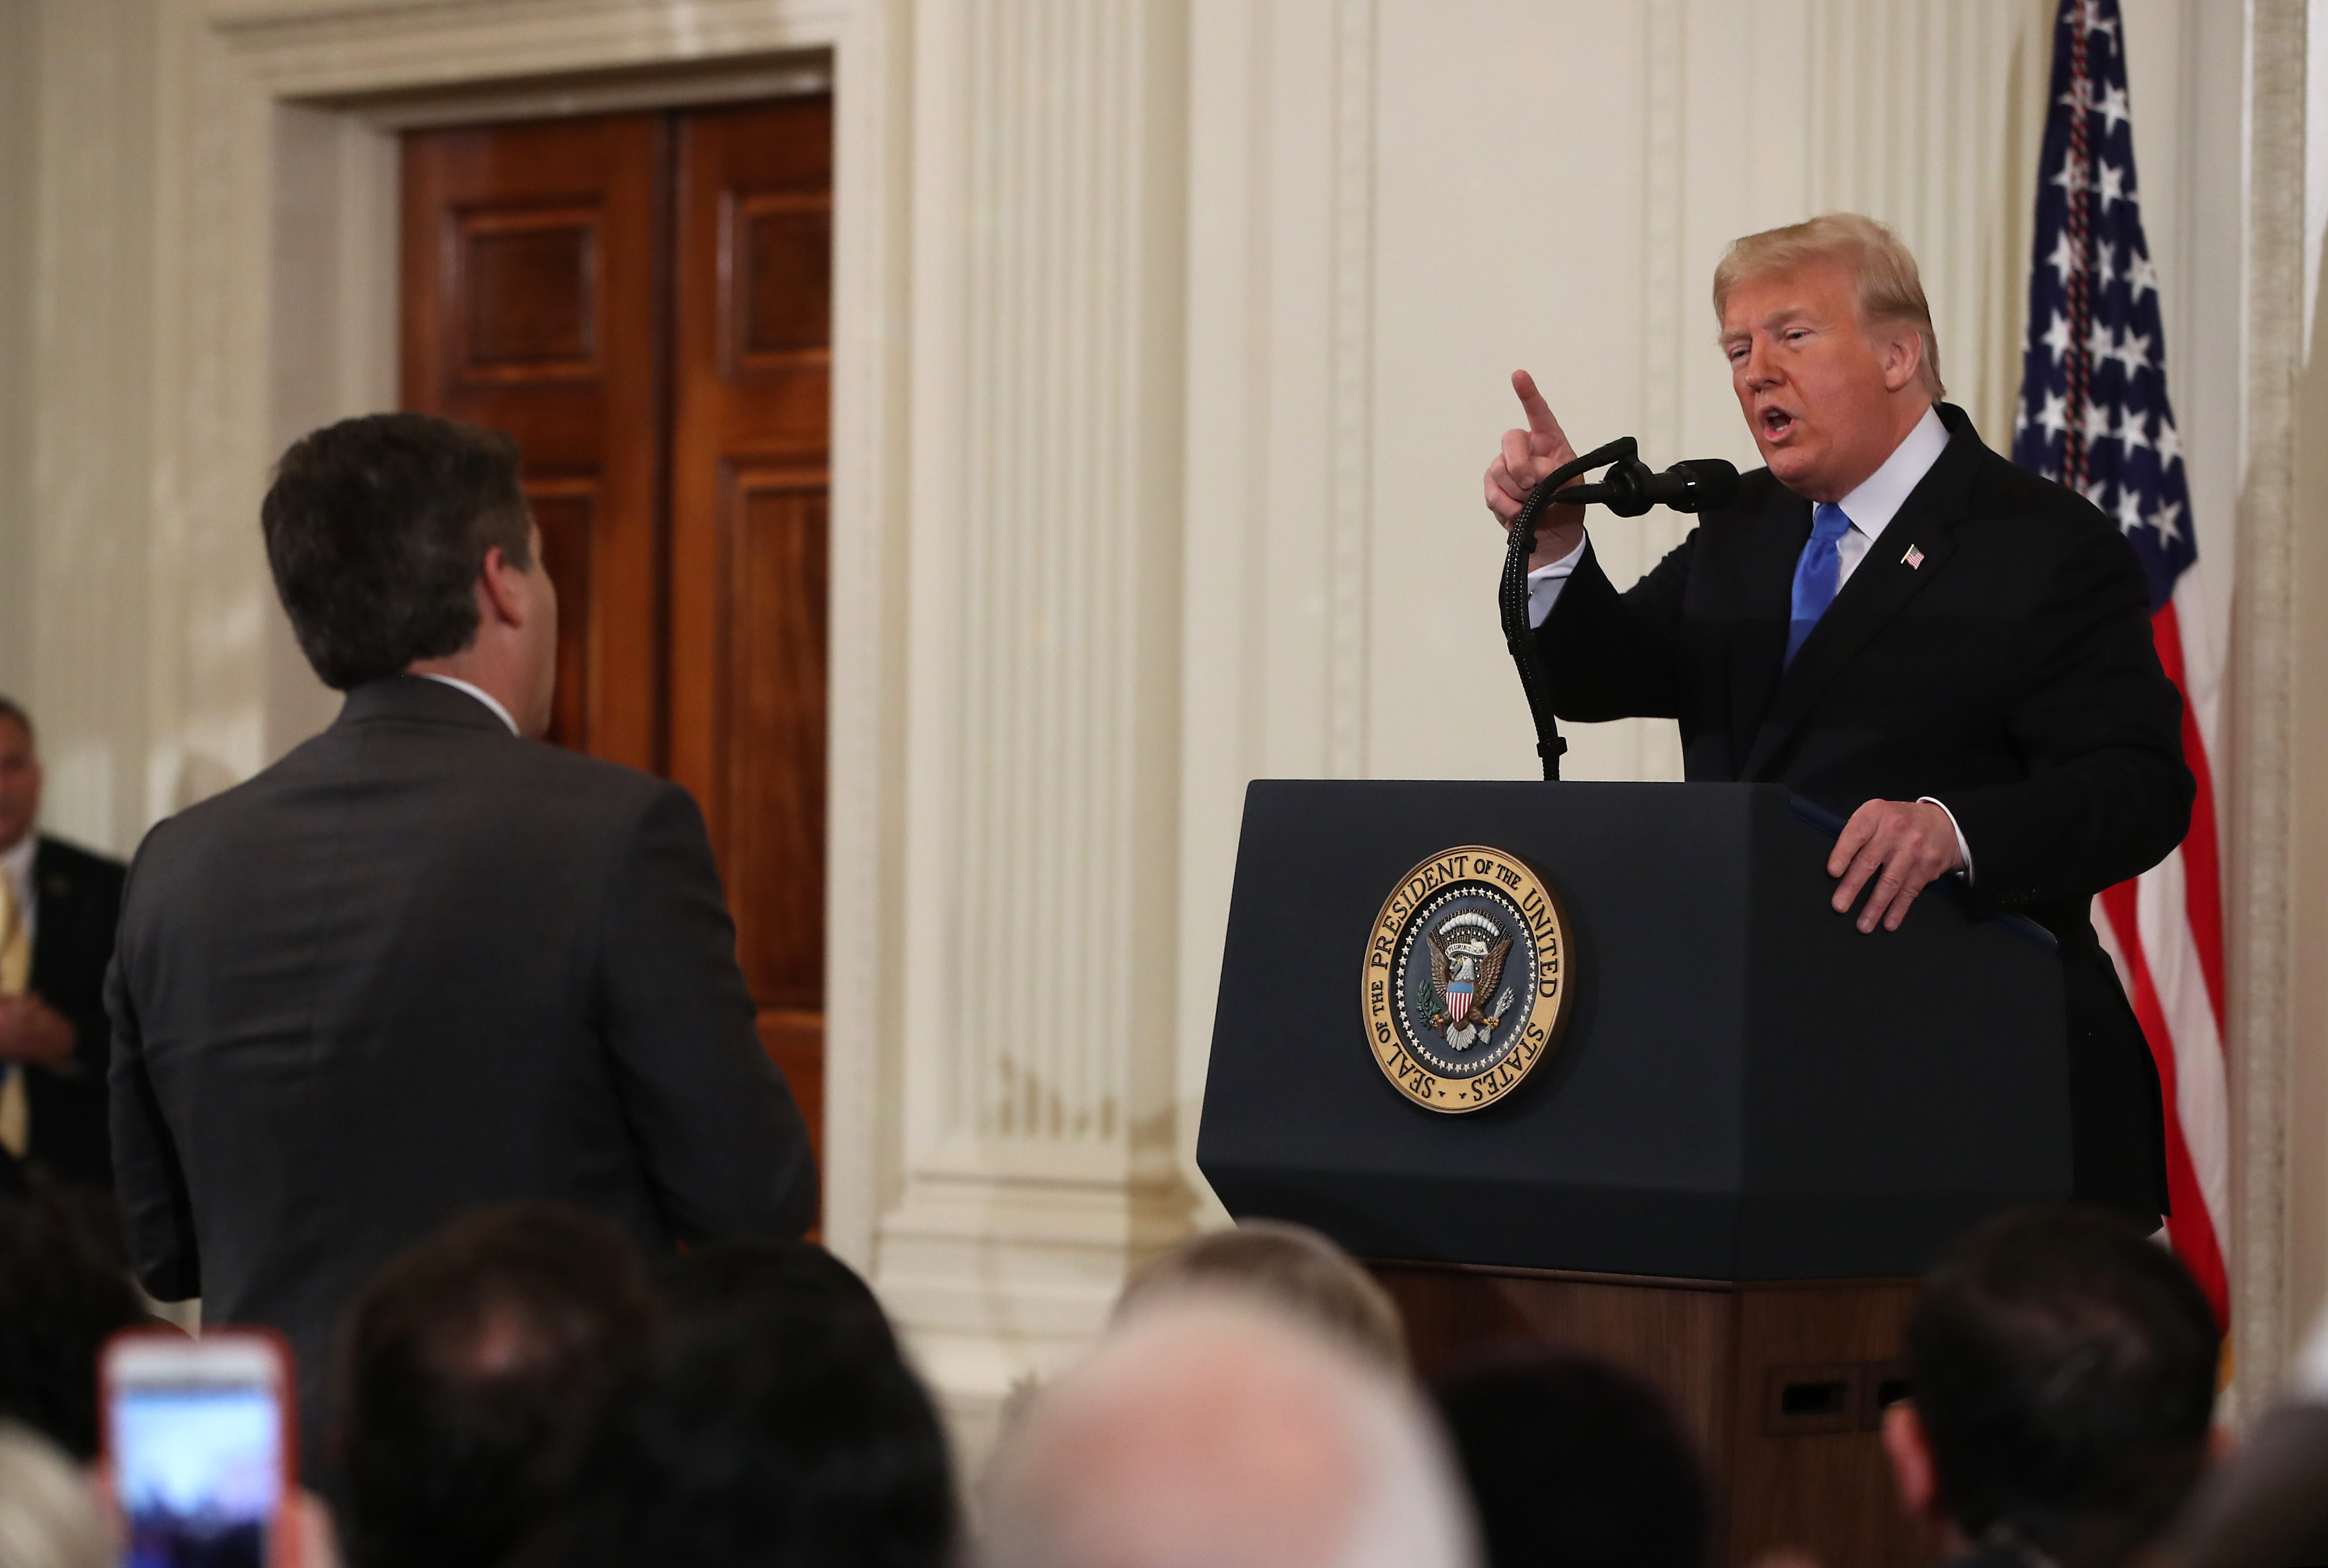 U.S. President Donald Trump answers a question from Jim Acosta of CNN after giving remarks a day after the midterm elections on November 7, 2018, in the East Room of the White House in Washington, DC. (Getty Images)